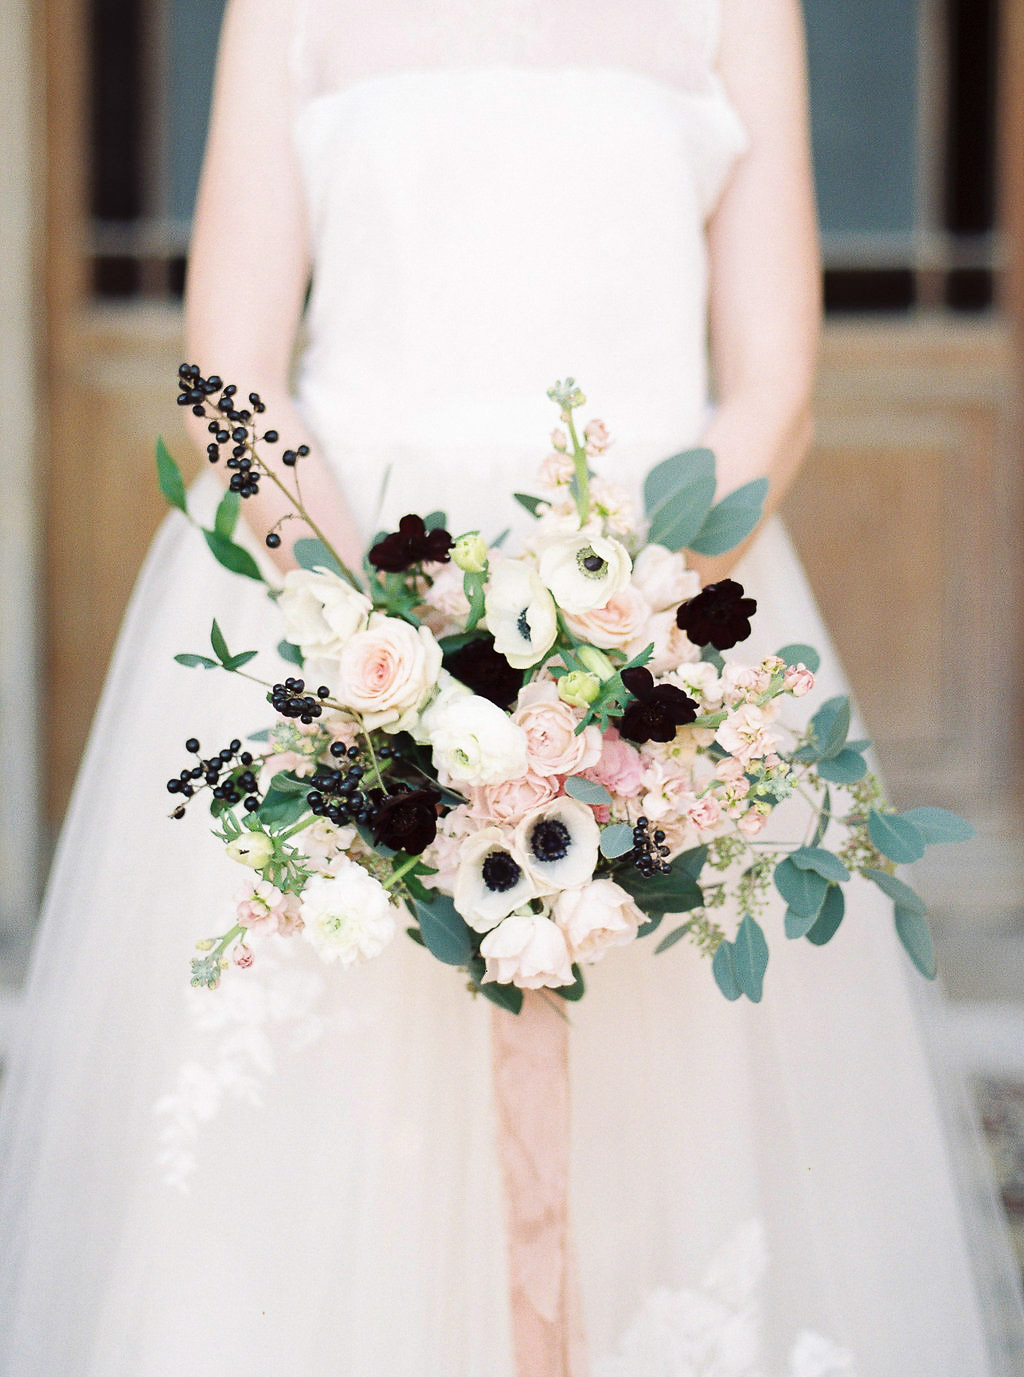 romantic bridal bouquet in white blush and black tones